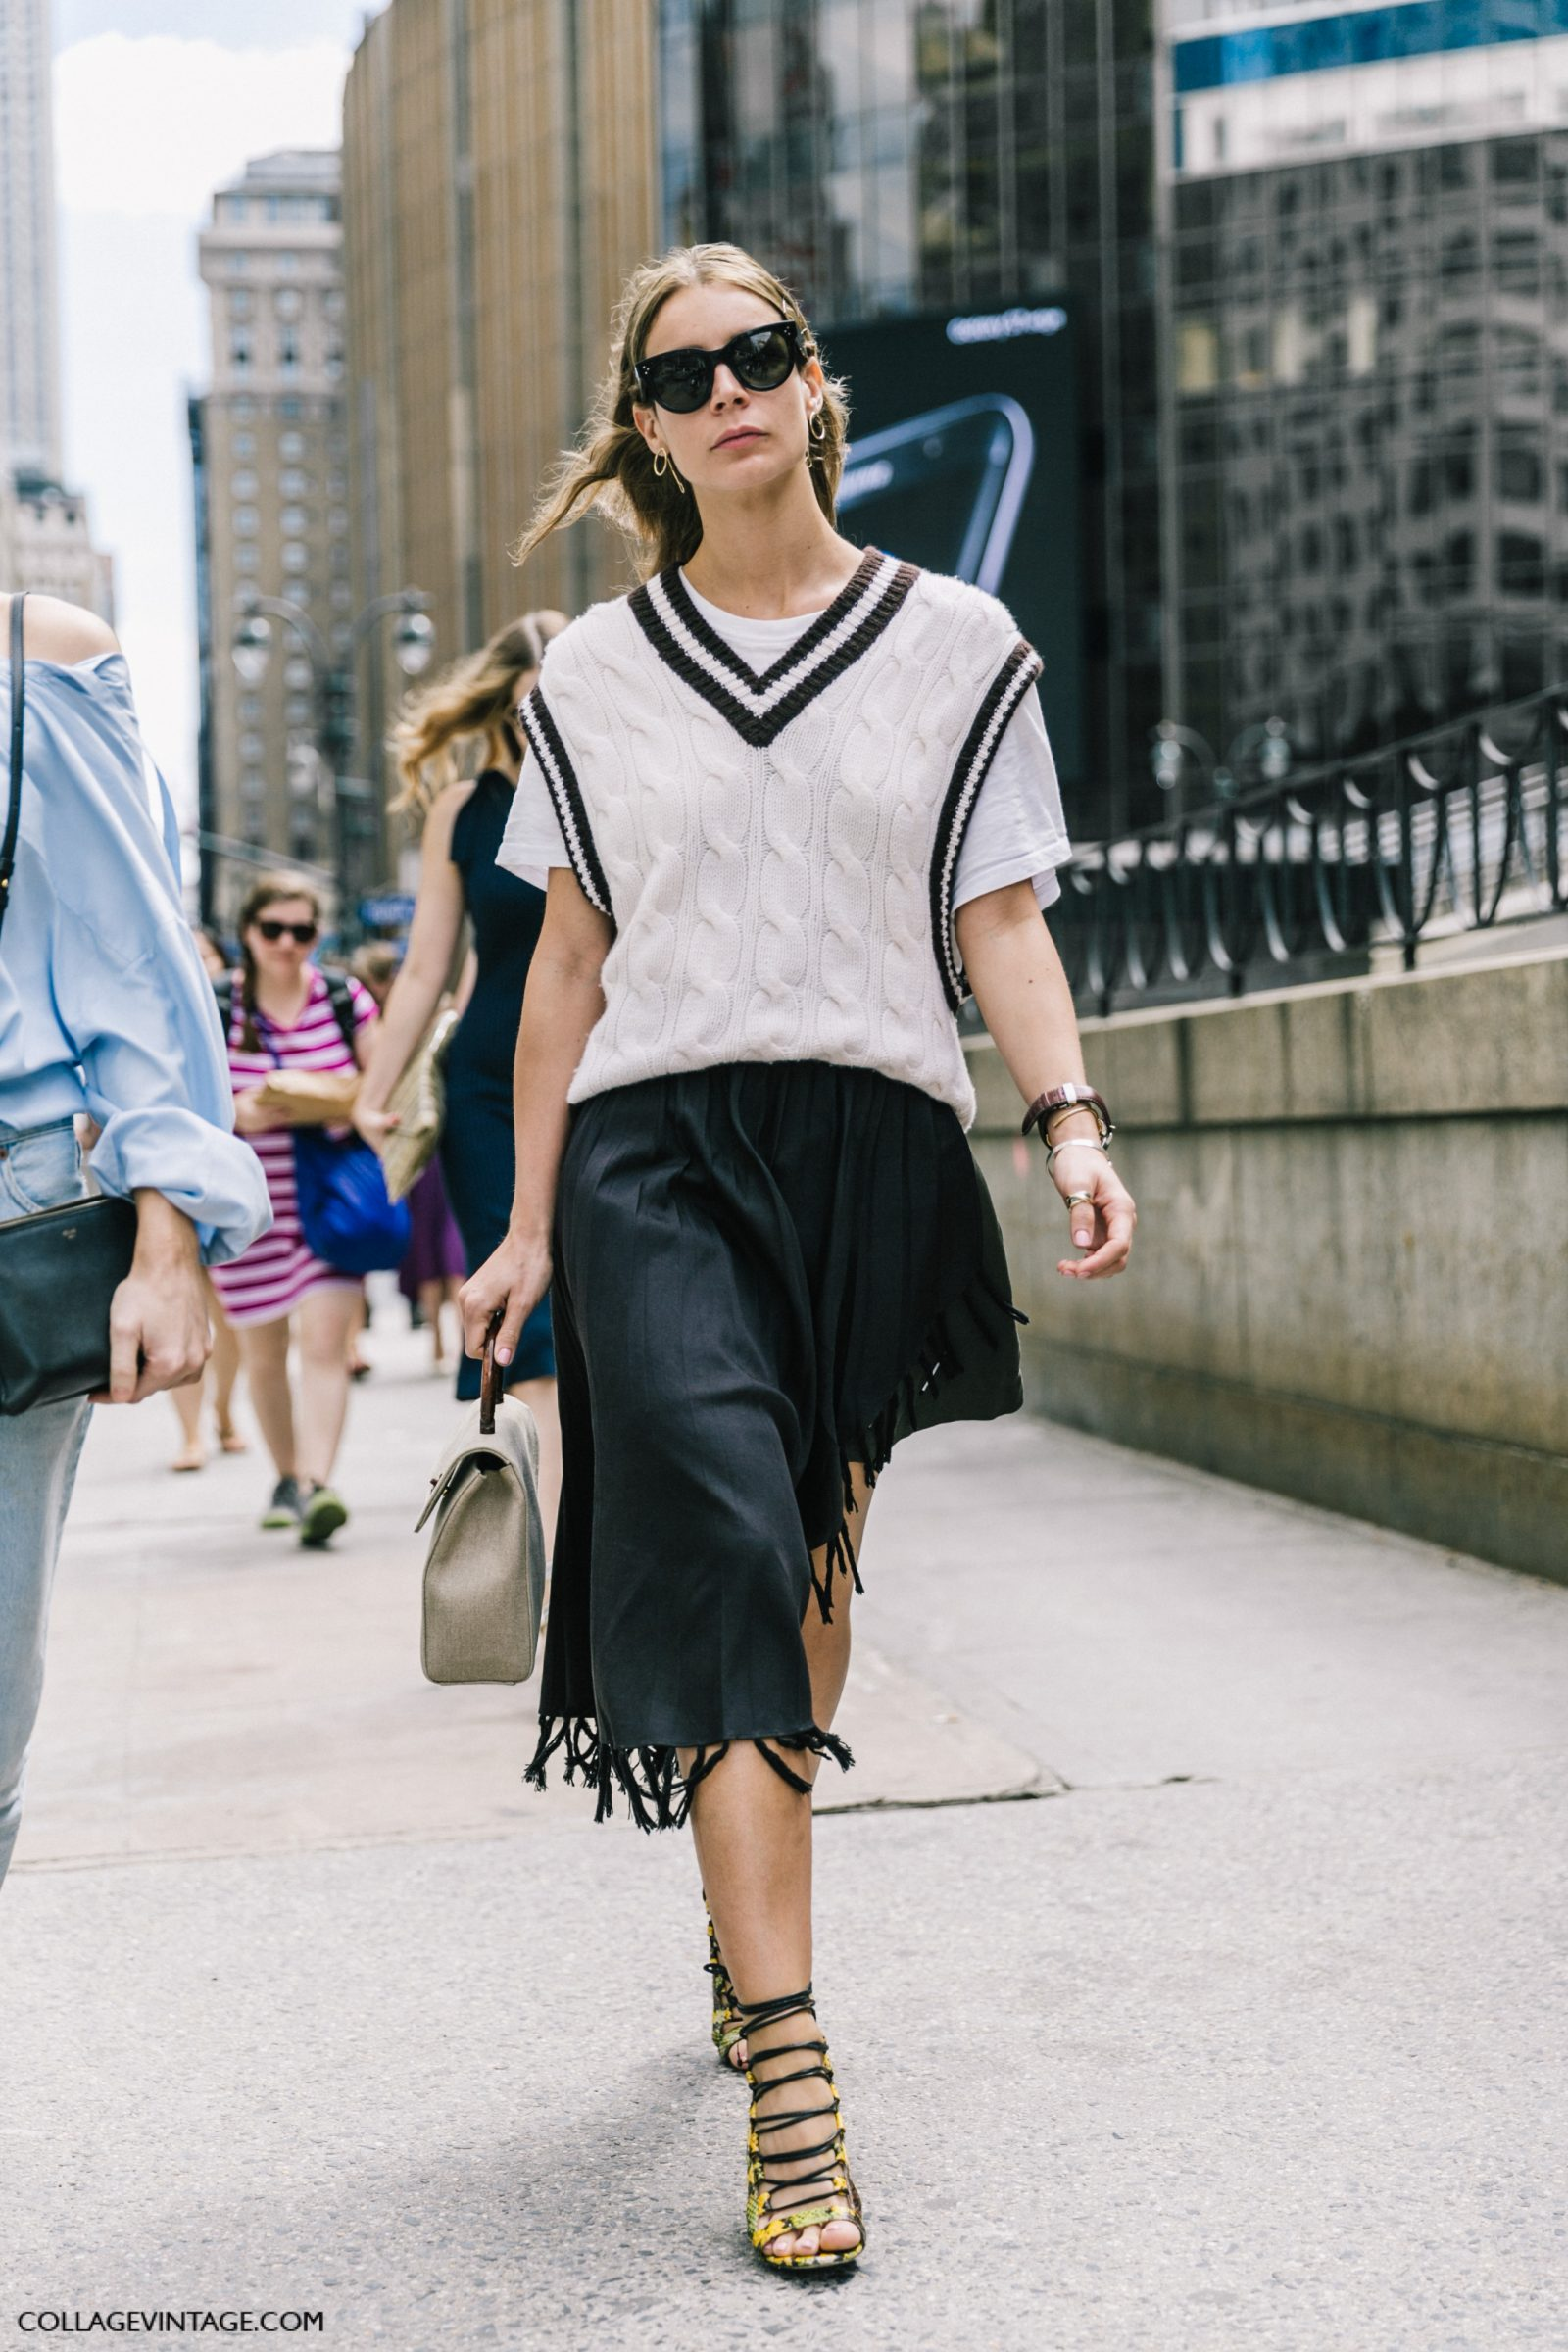 nyfw-new_york_fashion_week_ss17-street_style-outfits-collage_vintage-vintage-tome-83